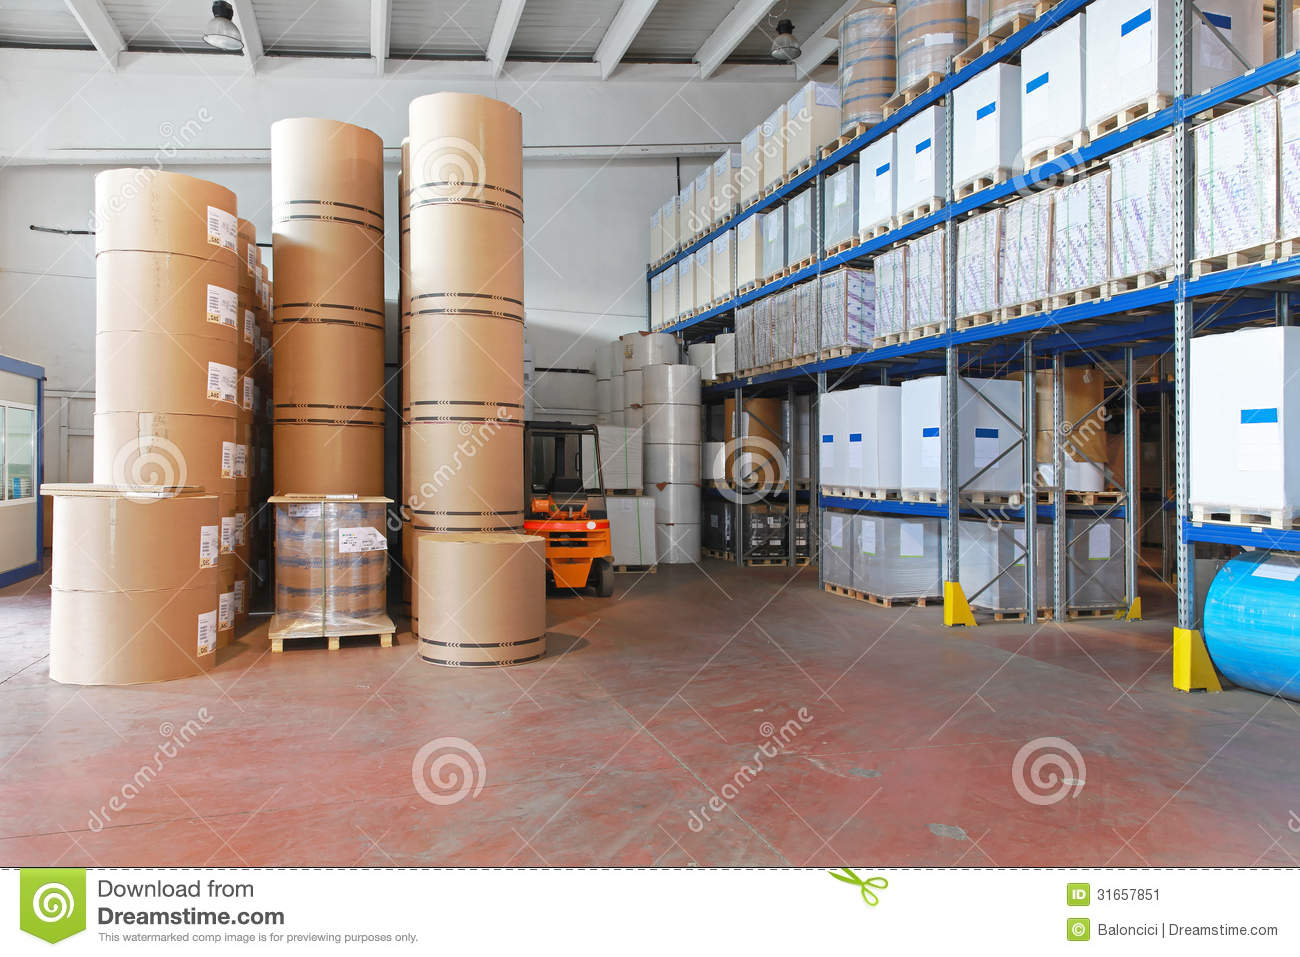 warehouse essay friction homework help roll paper warehouse